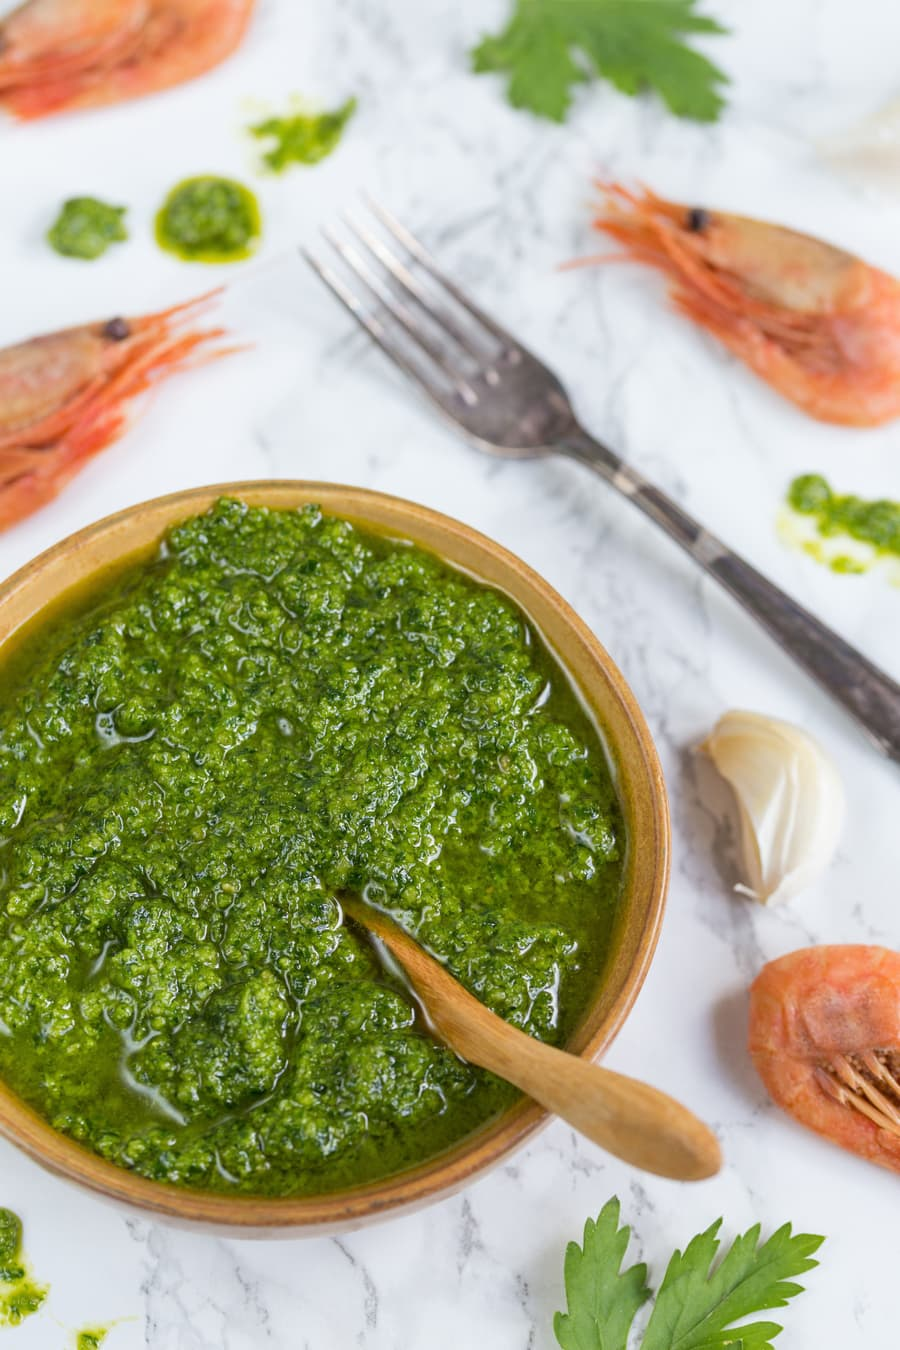 Bowl of pesto and shrimps on the table.